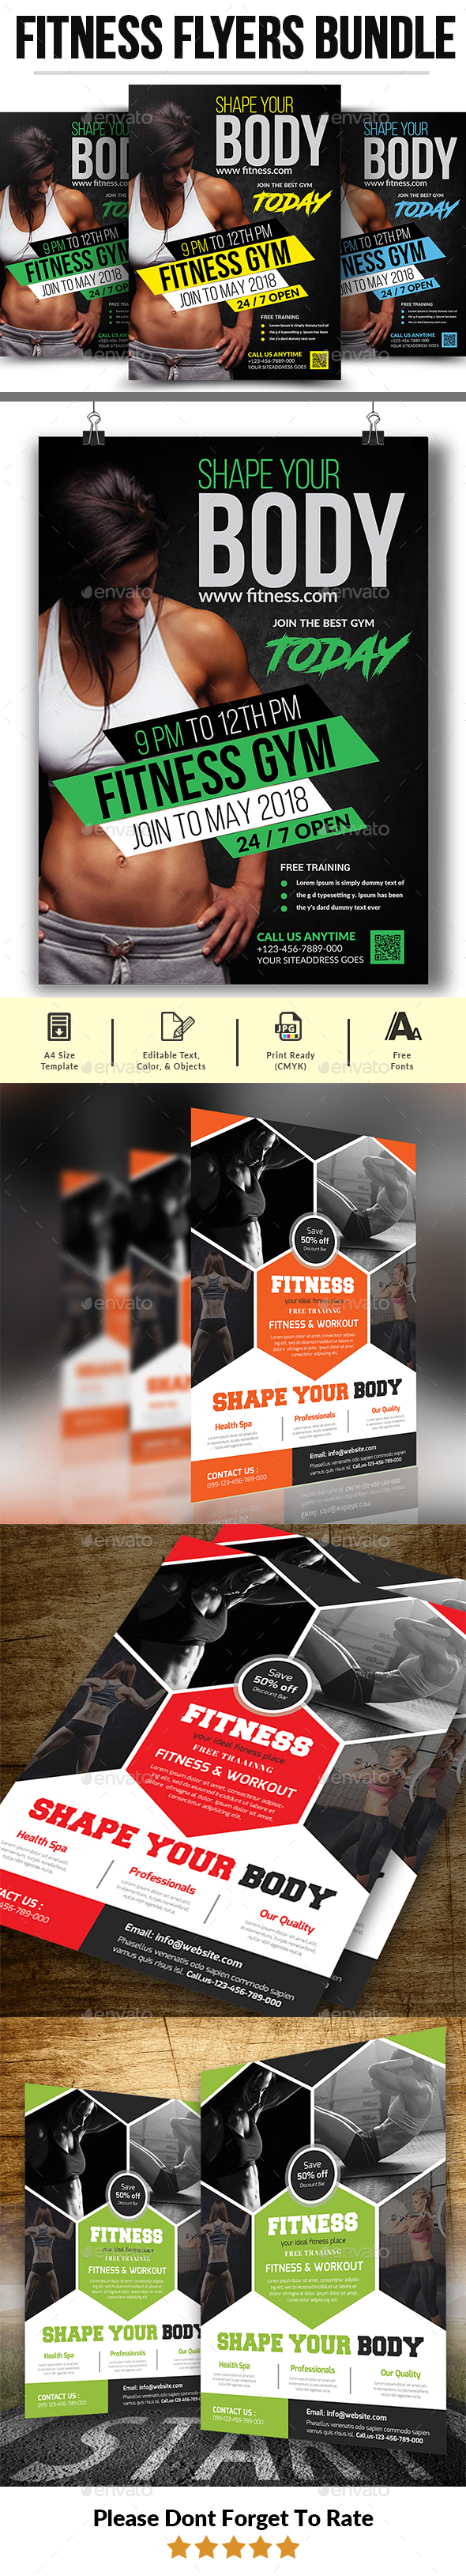 Fitness Flyers Bundle Template - Corporate Flyers